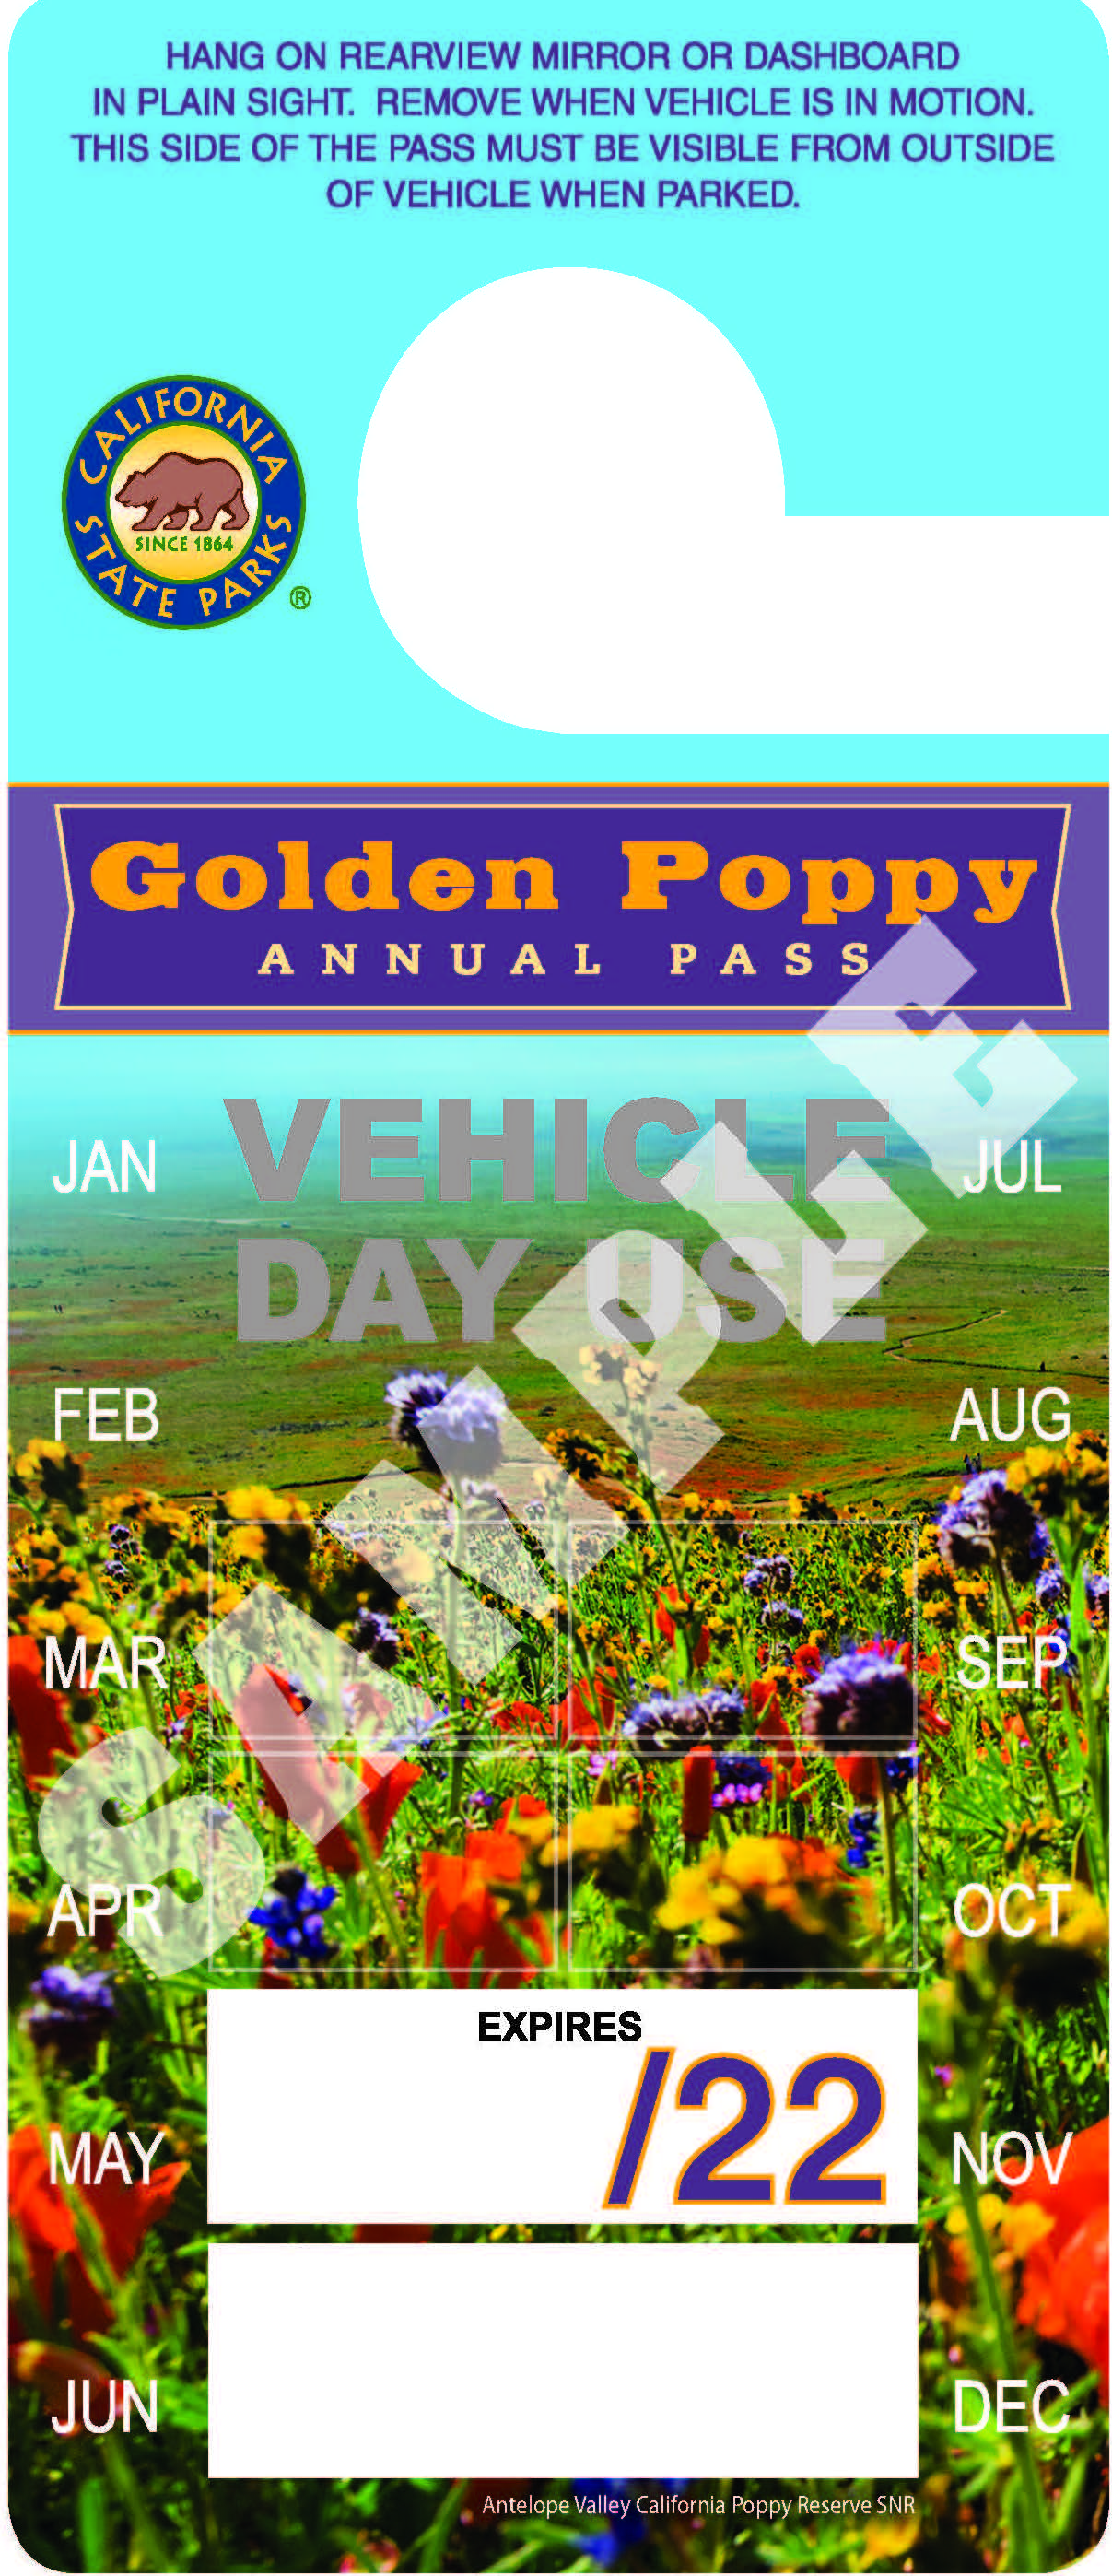 Golden Poppy Annual Pass Image